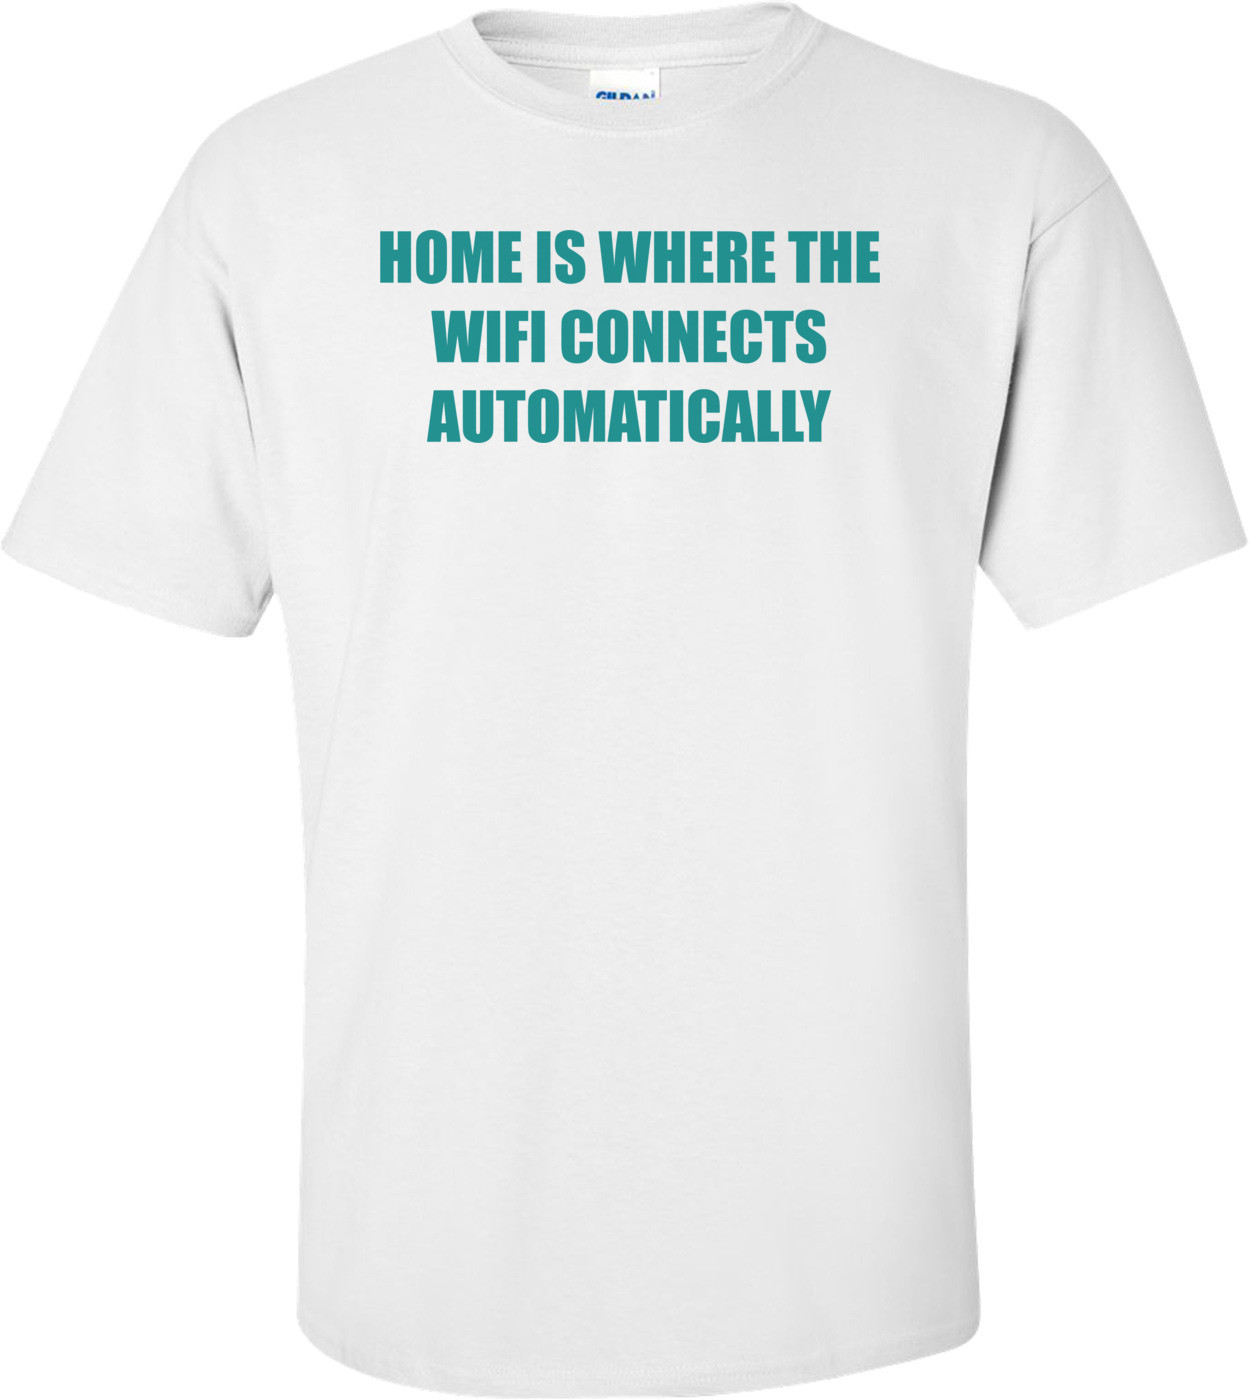 HOME IS WHERE THE WIFI CONNECTS AUTOMATICALLY Shirt